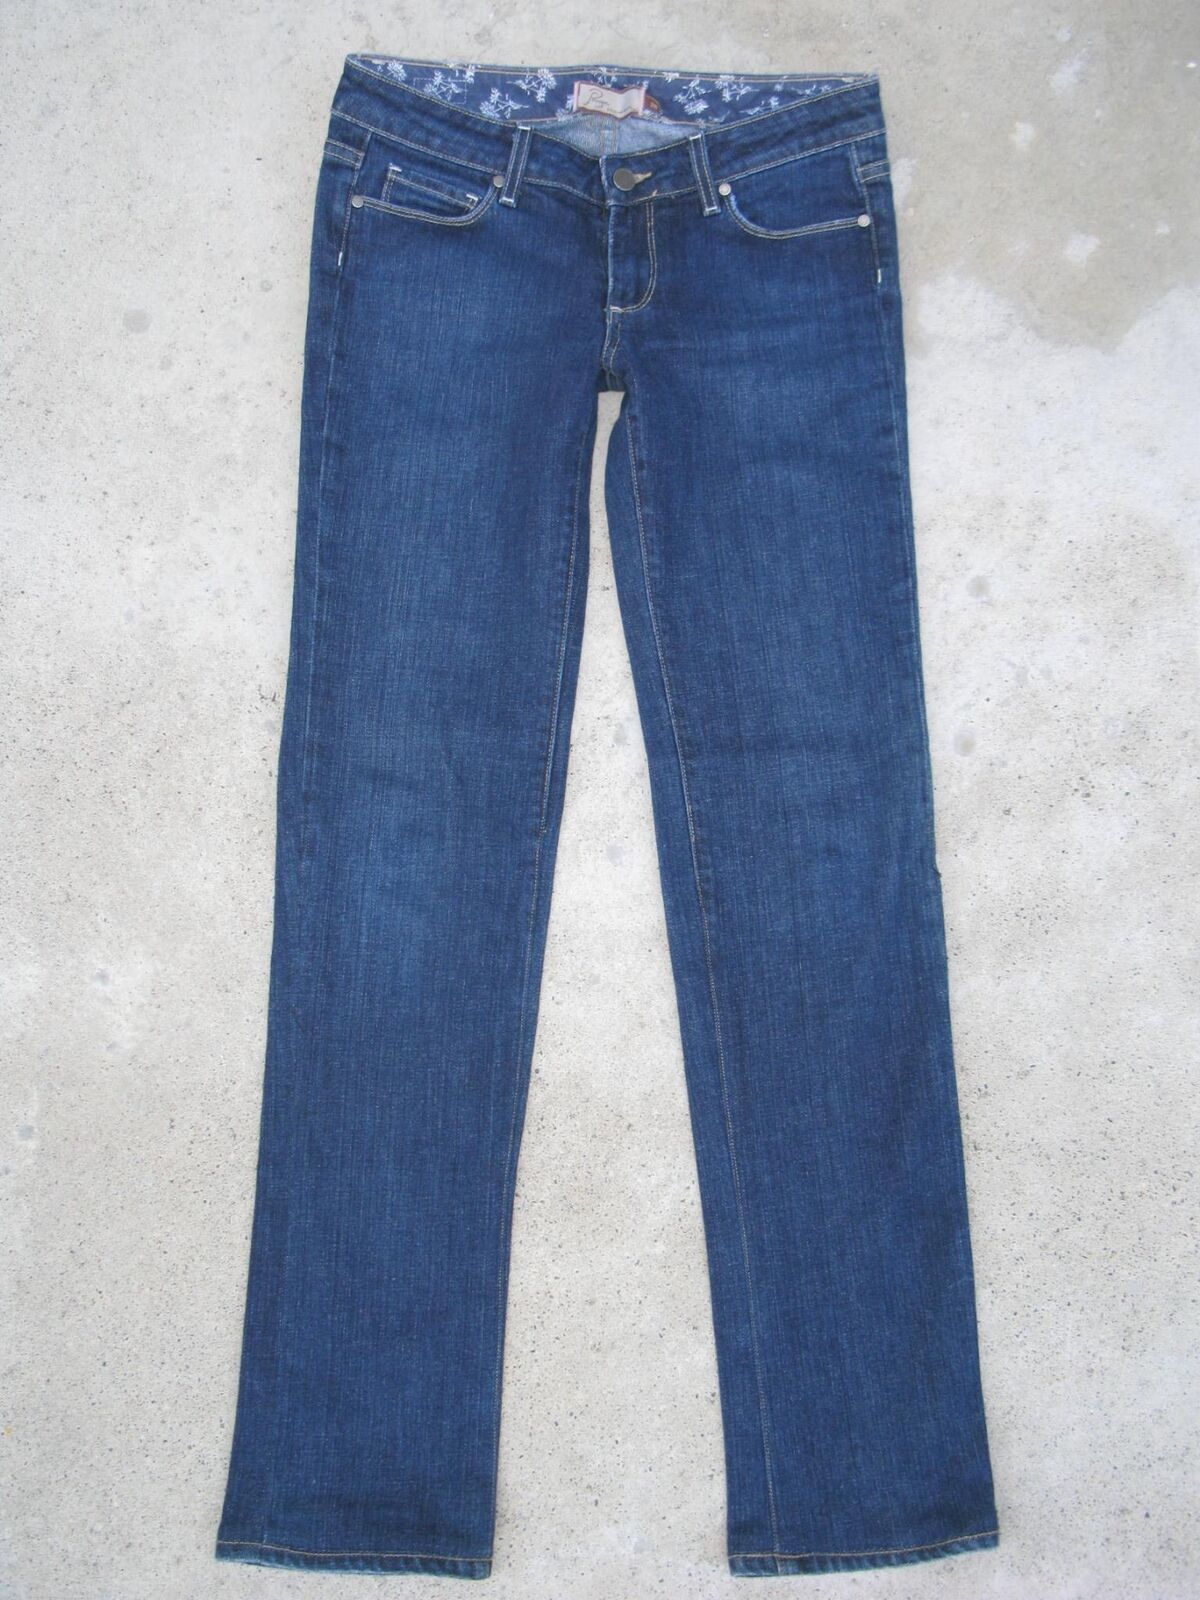 Paige Premium Jeans Womens Hollywood Hills Sz 28 Straight Legs Narrowed